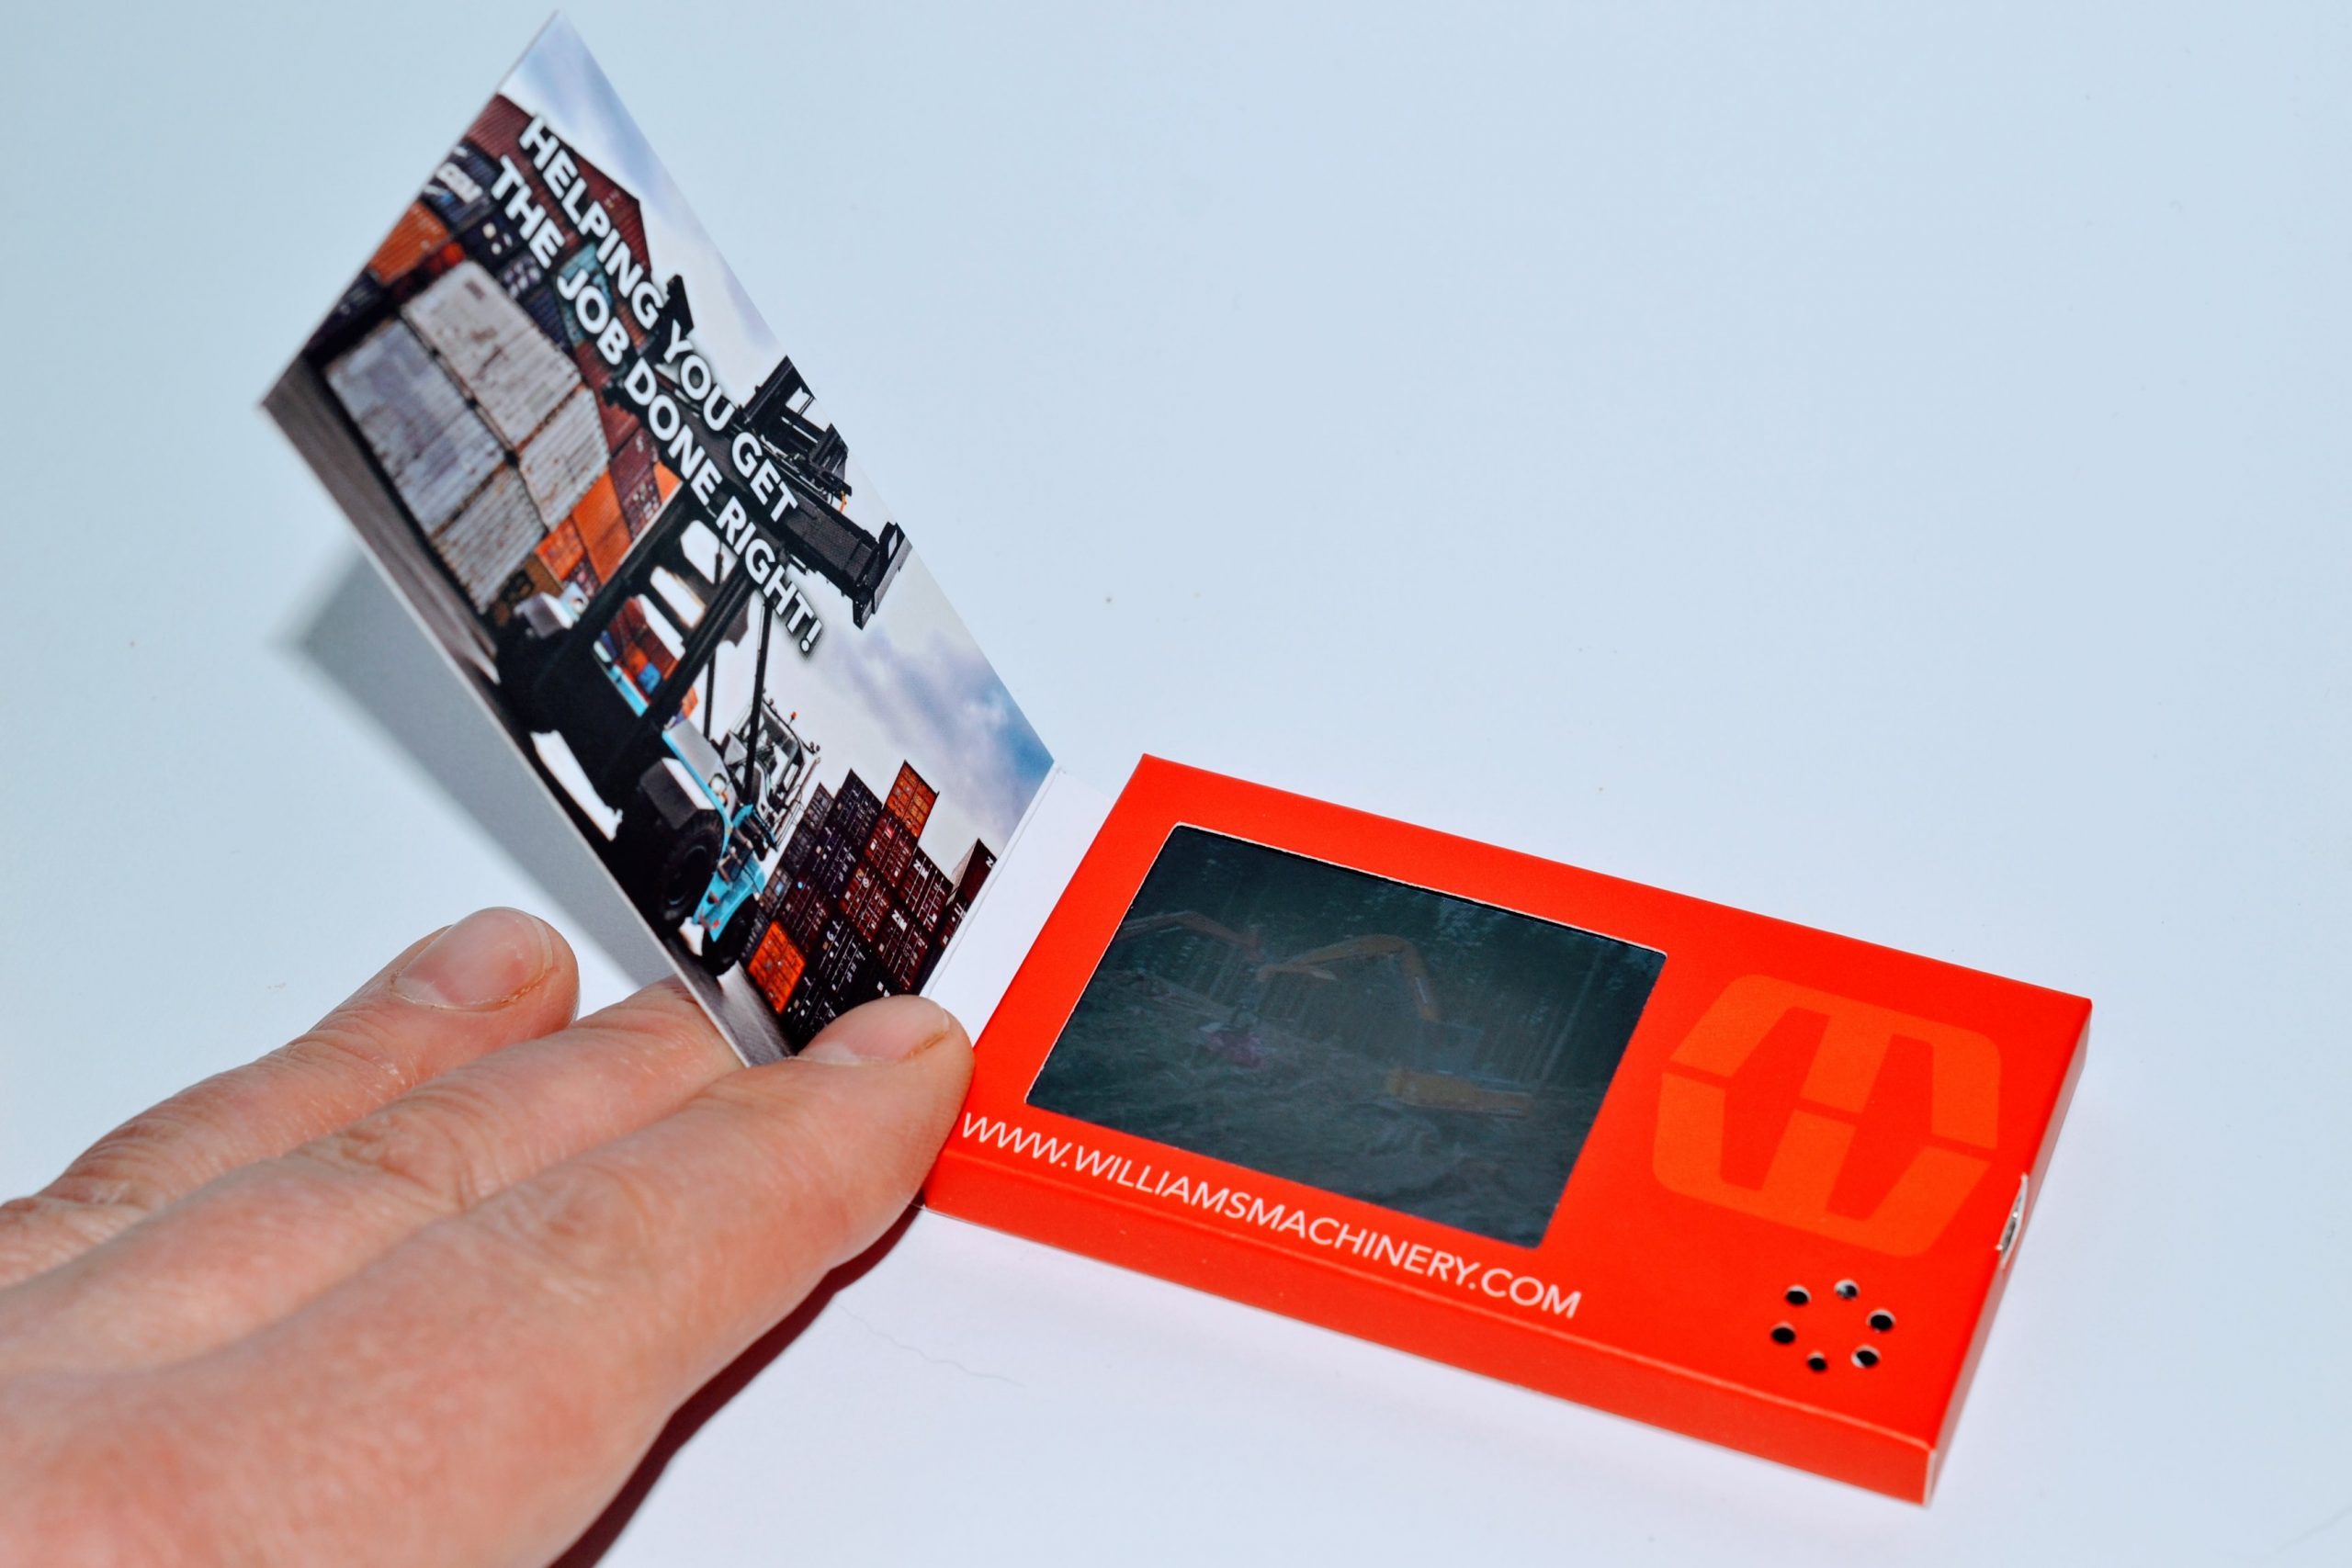 LCD business card in a person's hand